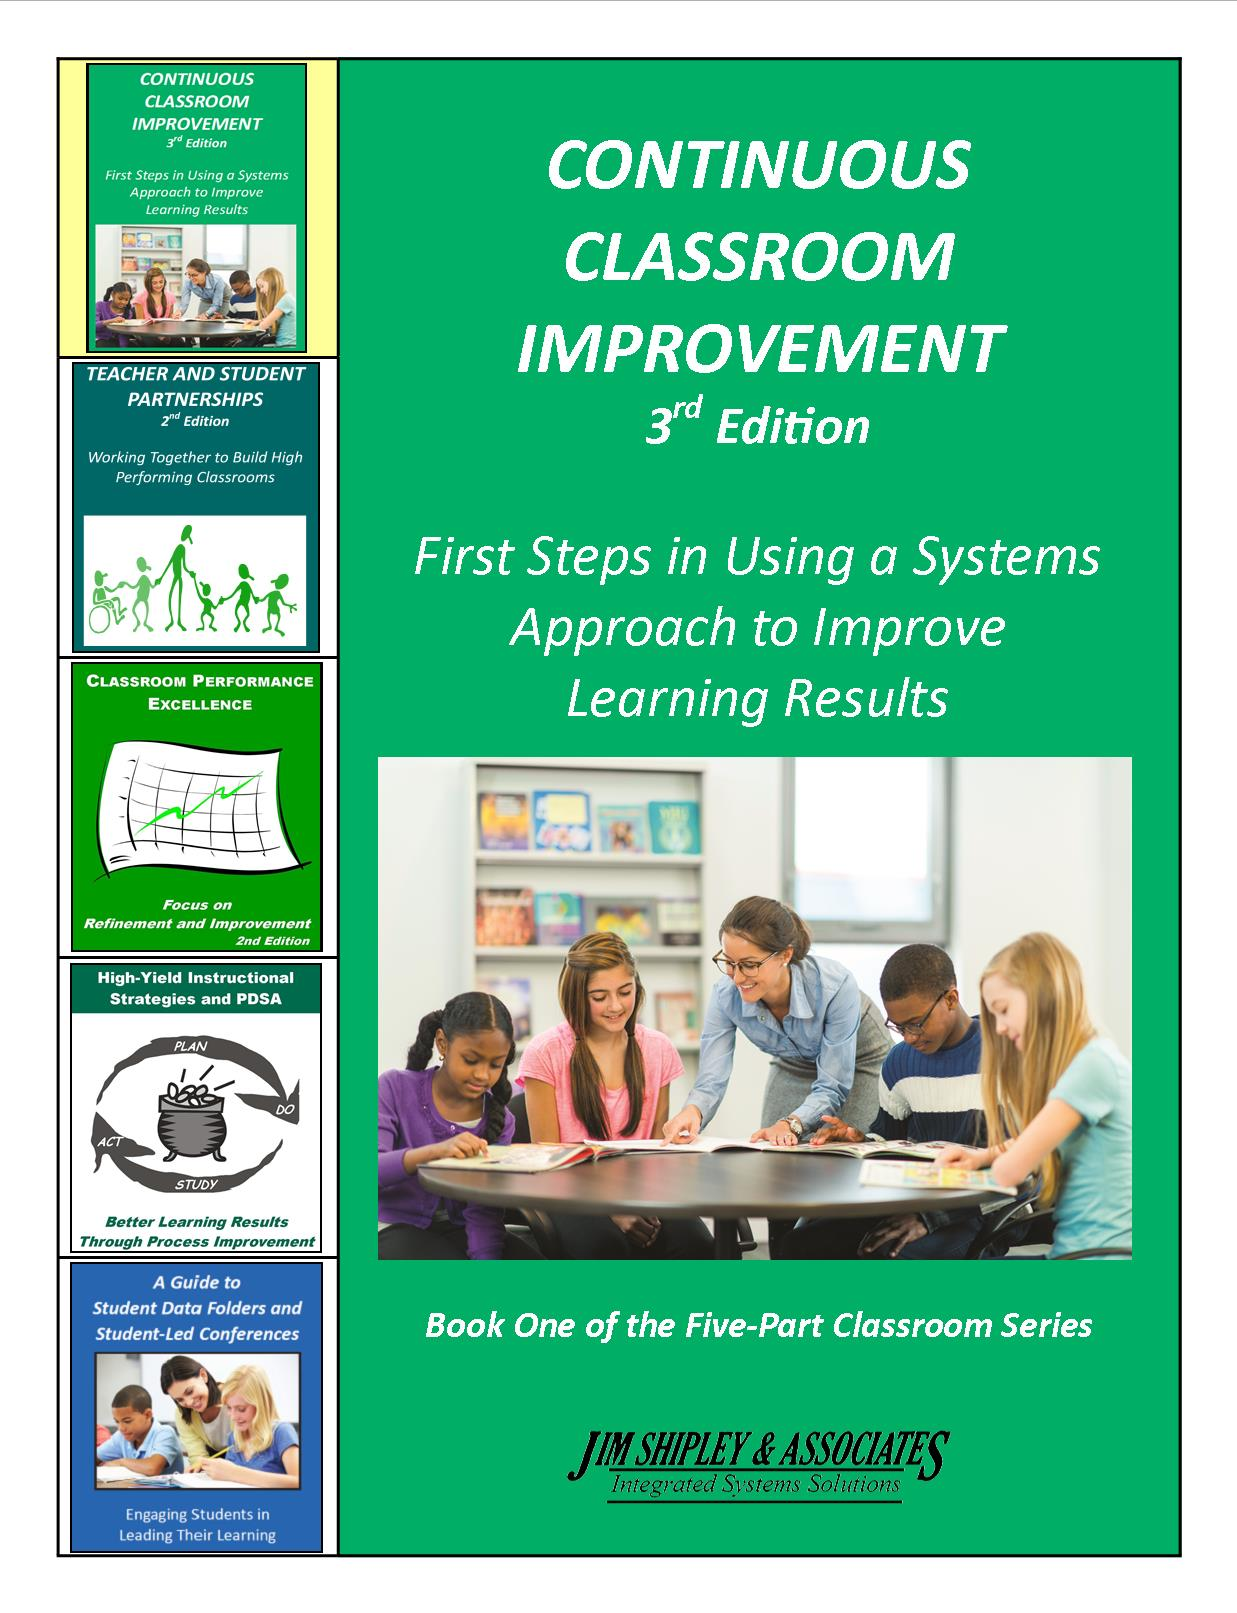 CCI3_1114 - Continuous Classroom Improvement 3rd Edition Cover Image